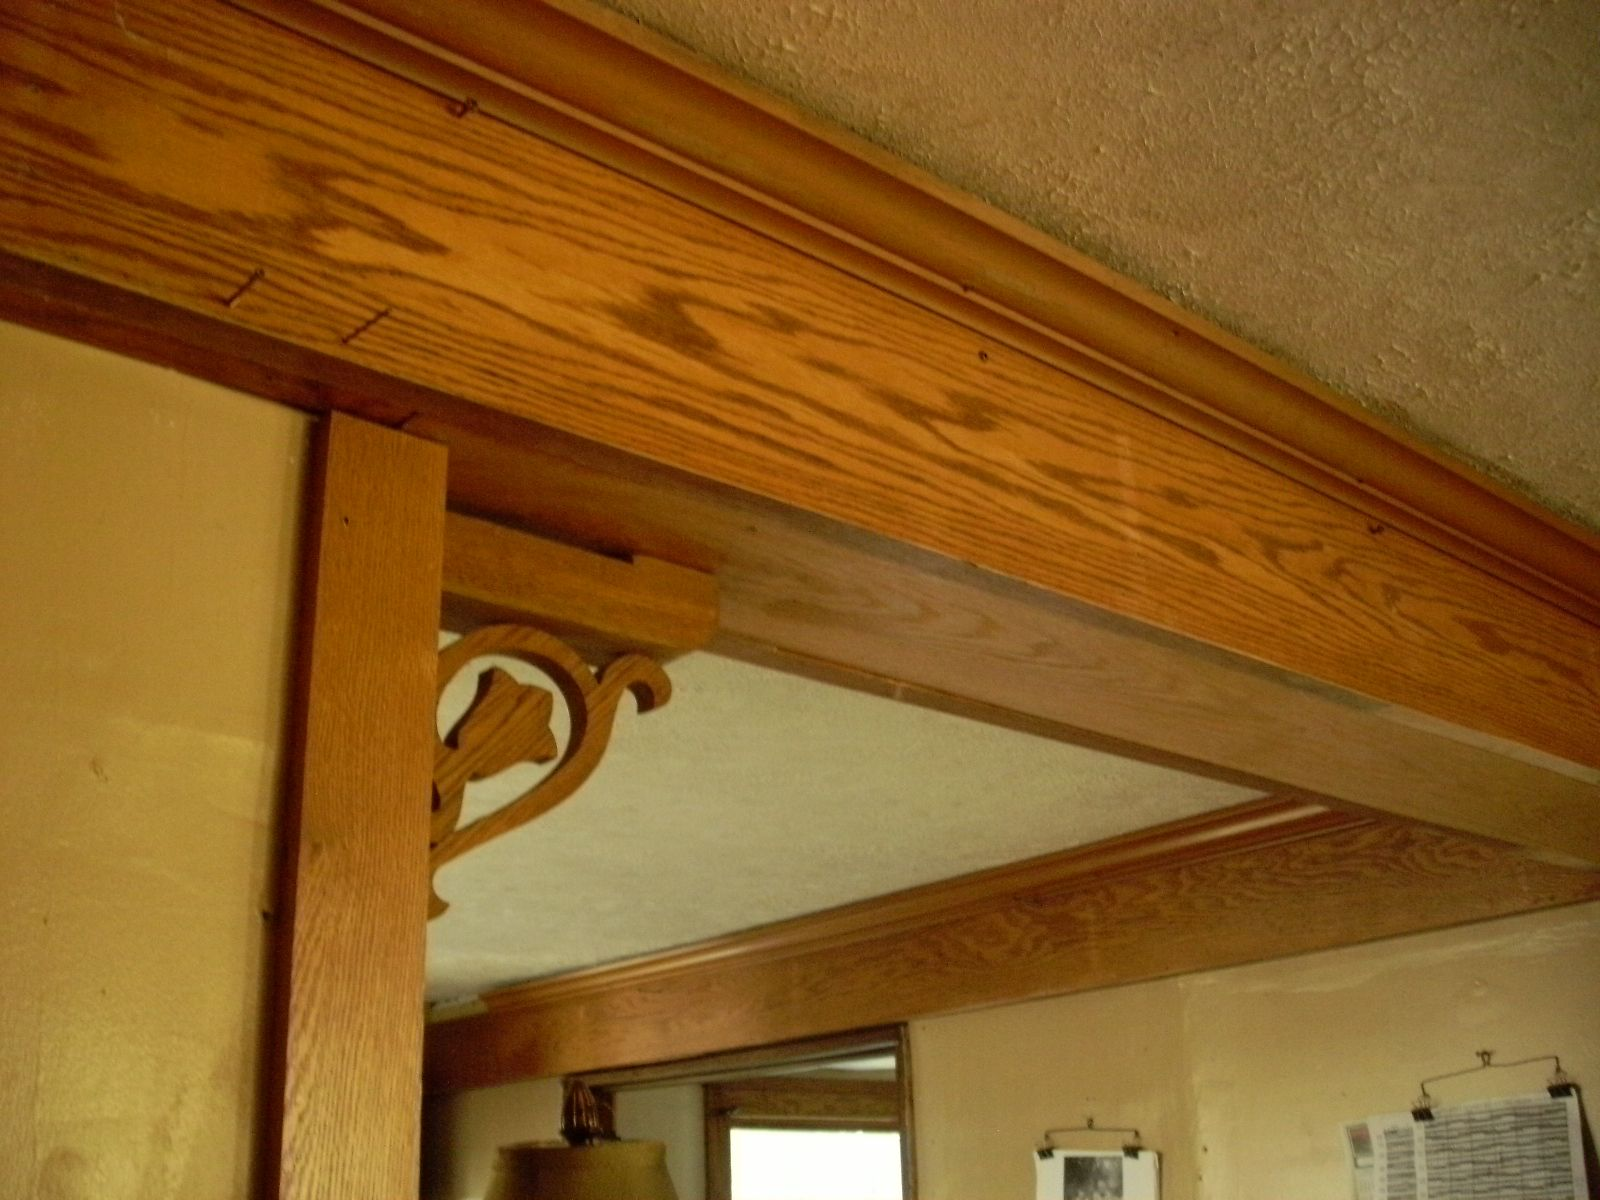 (1) 100 ' thick oak shelves from restaurant - found at Salem Ohio Restore made into kitchen beams - (2) decorative pieces once a quilt frame base found at Salem Restore $7 - cut in half - made 4 corbals. - Crown molding $1 per 16' length  - finishing touch - work still in progress...